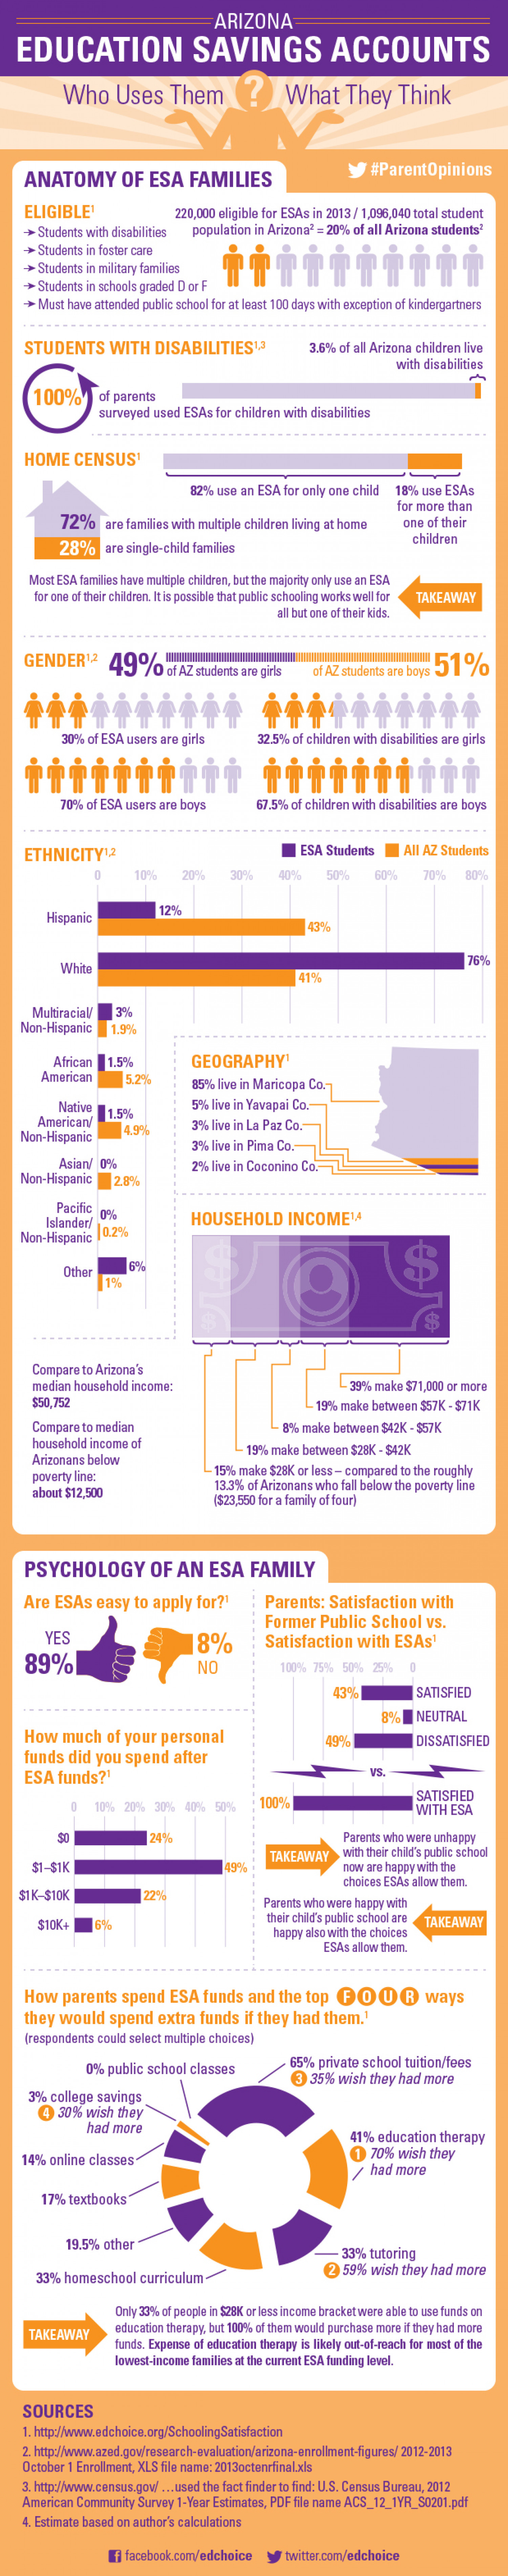 Are Arizona families satisfied with education savings accounts? Infographic